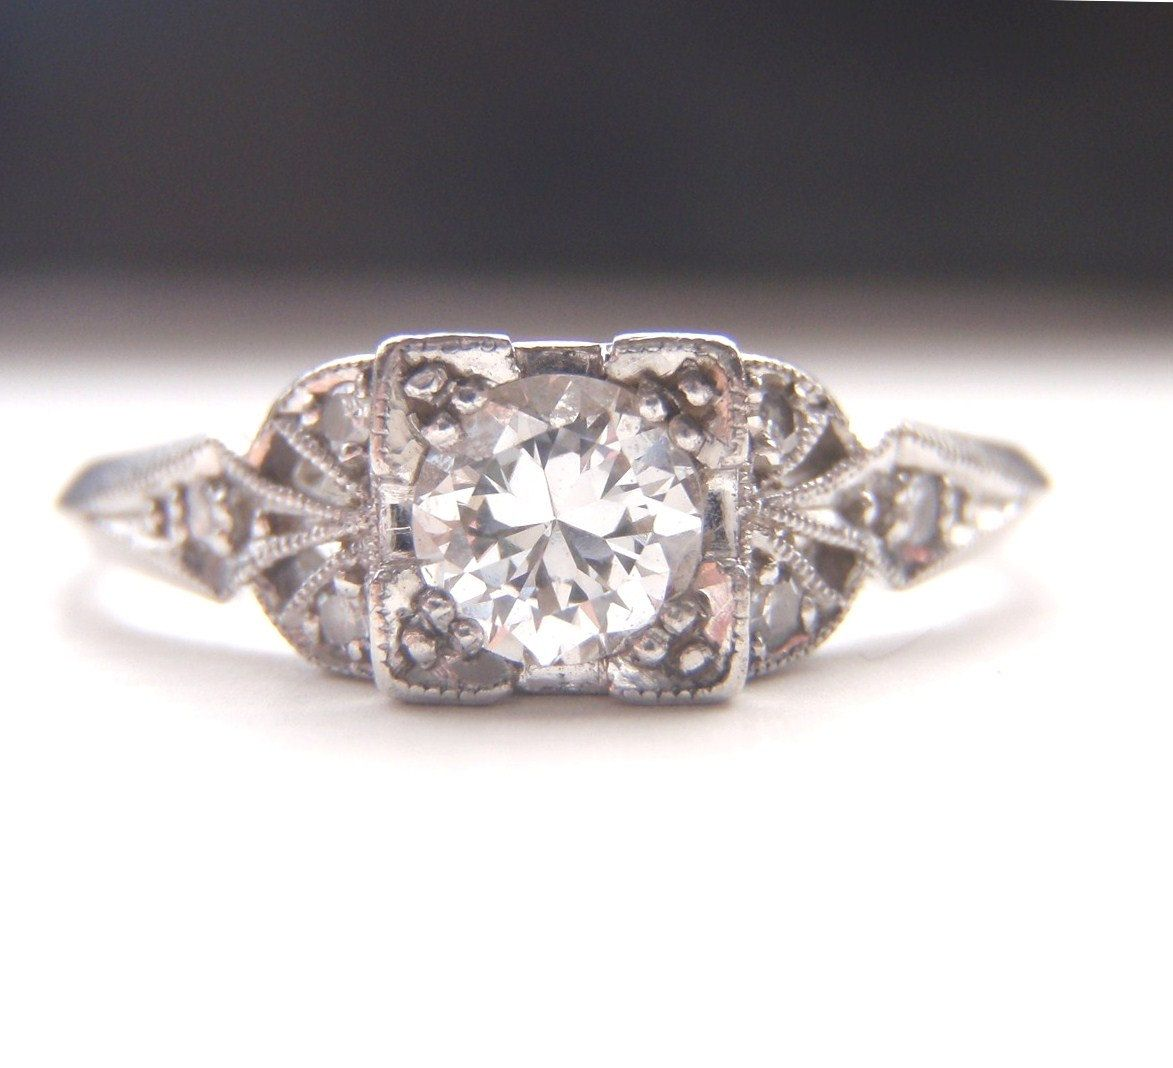 History Platinum: Edwardian / Art Deco Engagement Ring. Quality Platinum And